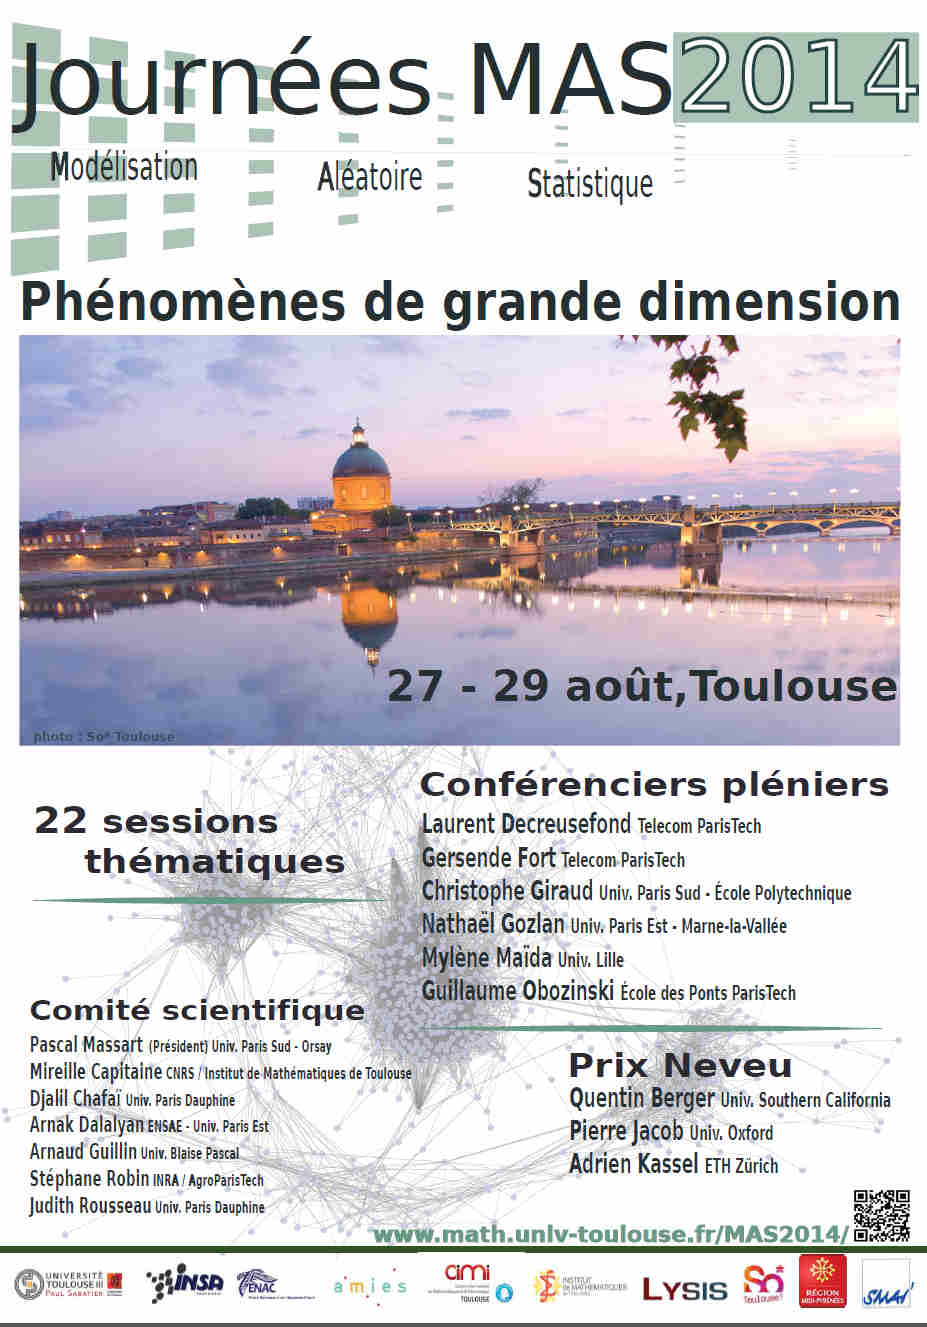 co organizer of the journes mas 2014 and the 2015 cimi machine learning trimester